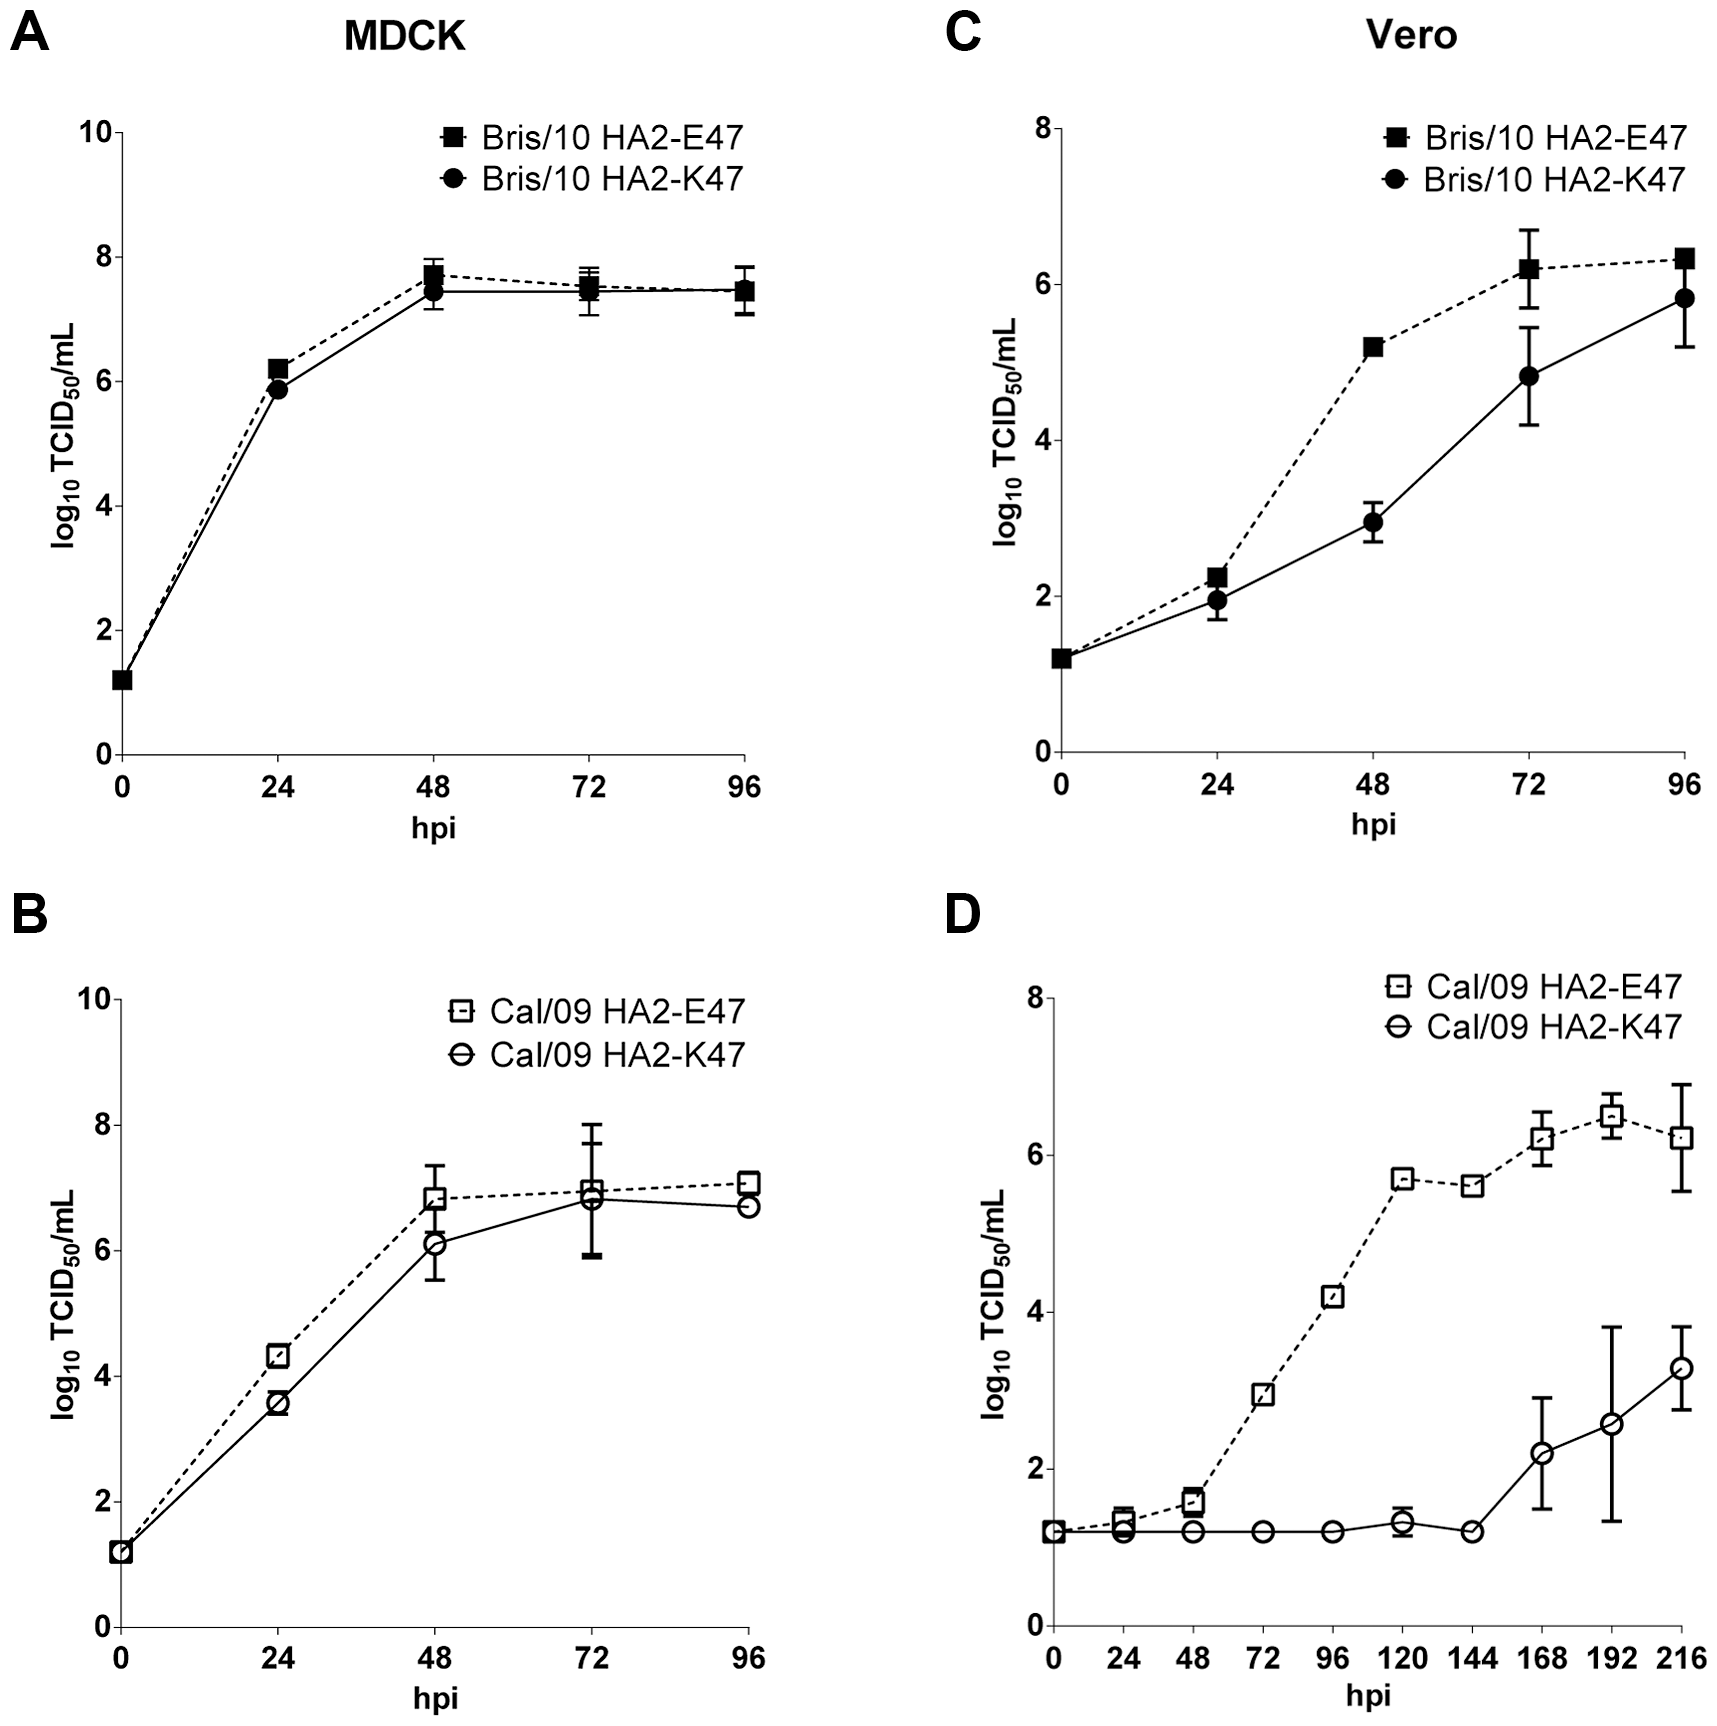 Growth kinetics of H1N1pdm viruses with HA2-E47 or K47 in MDCK and Vero cells.